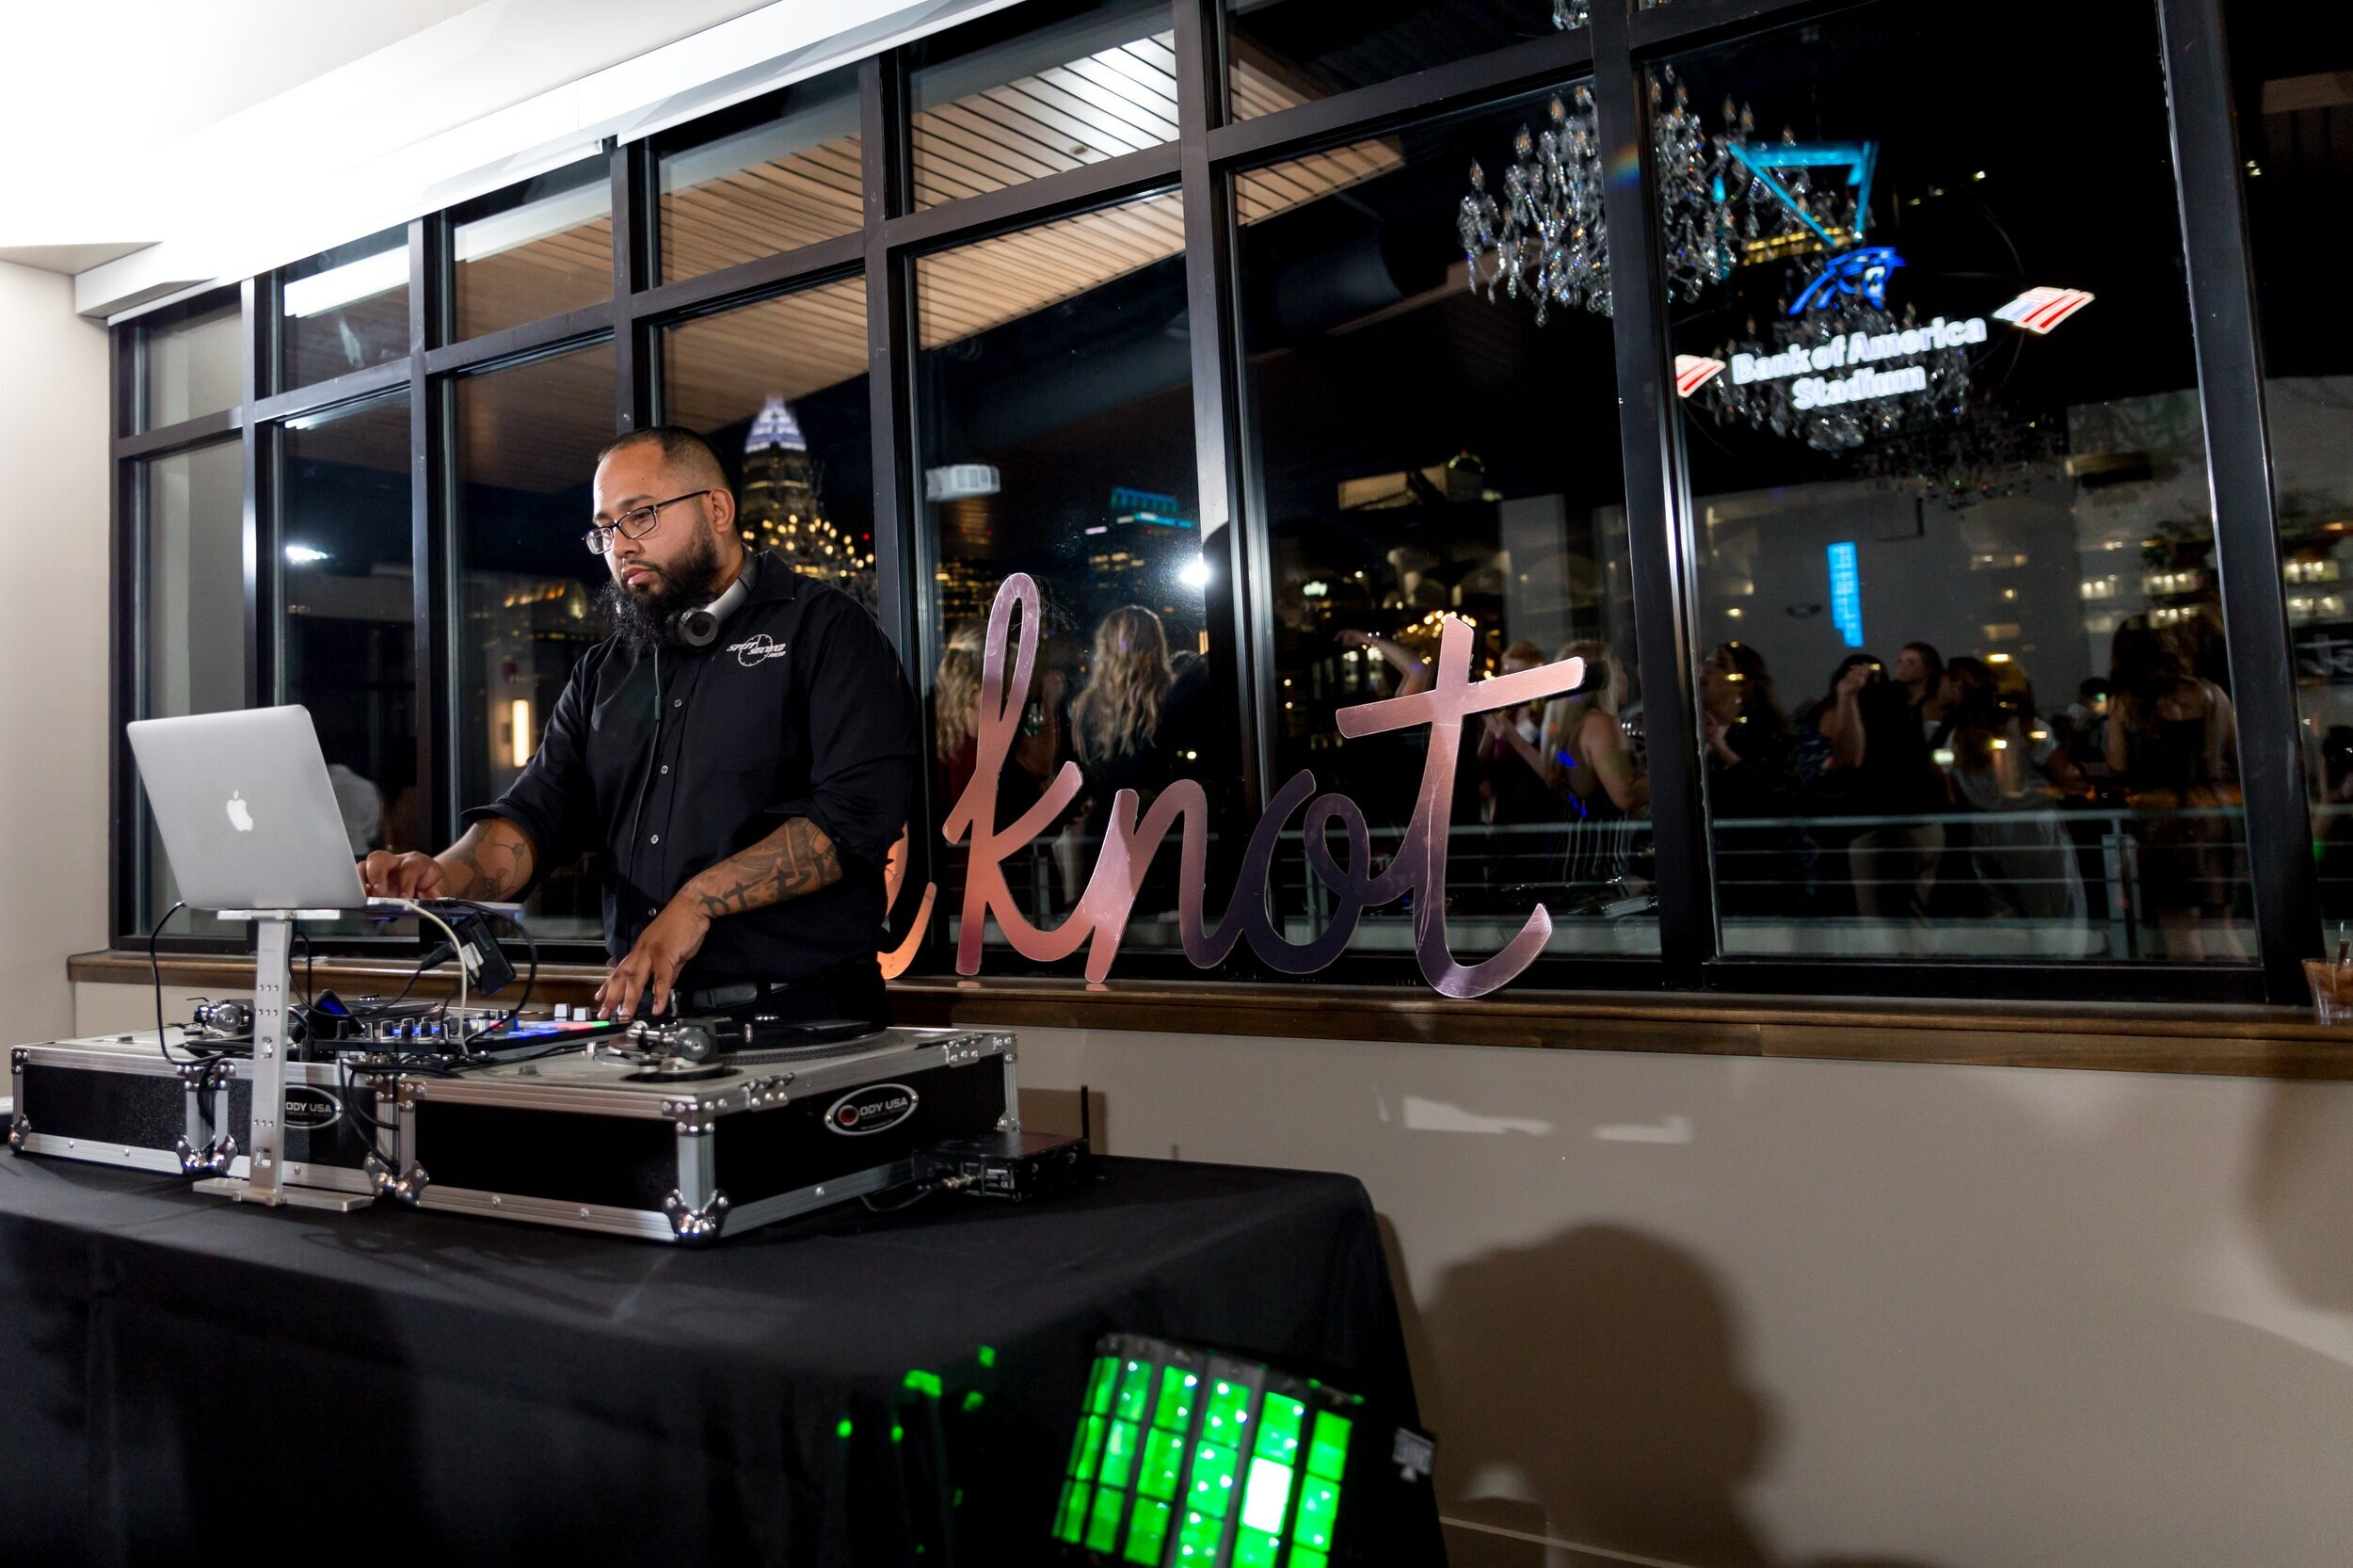 Split Second Sound DJ at The Knot Charlotte Mixer